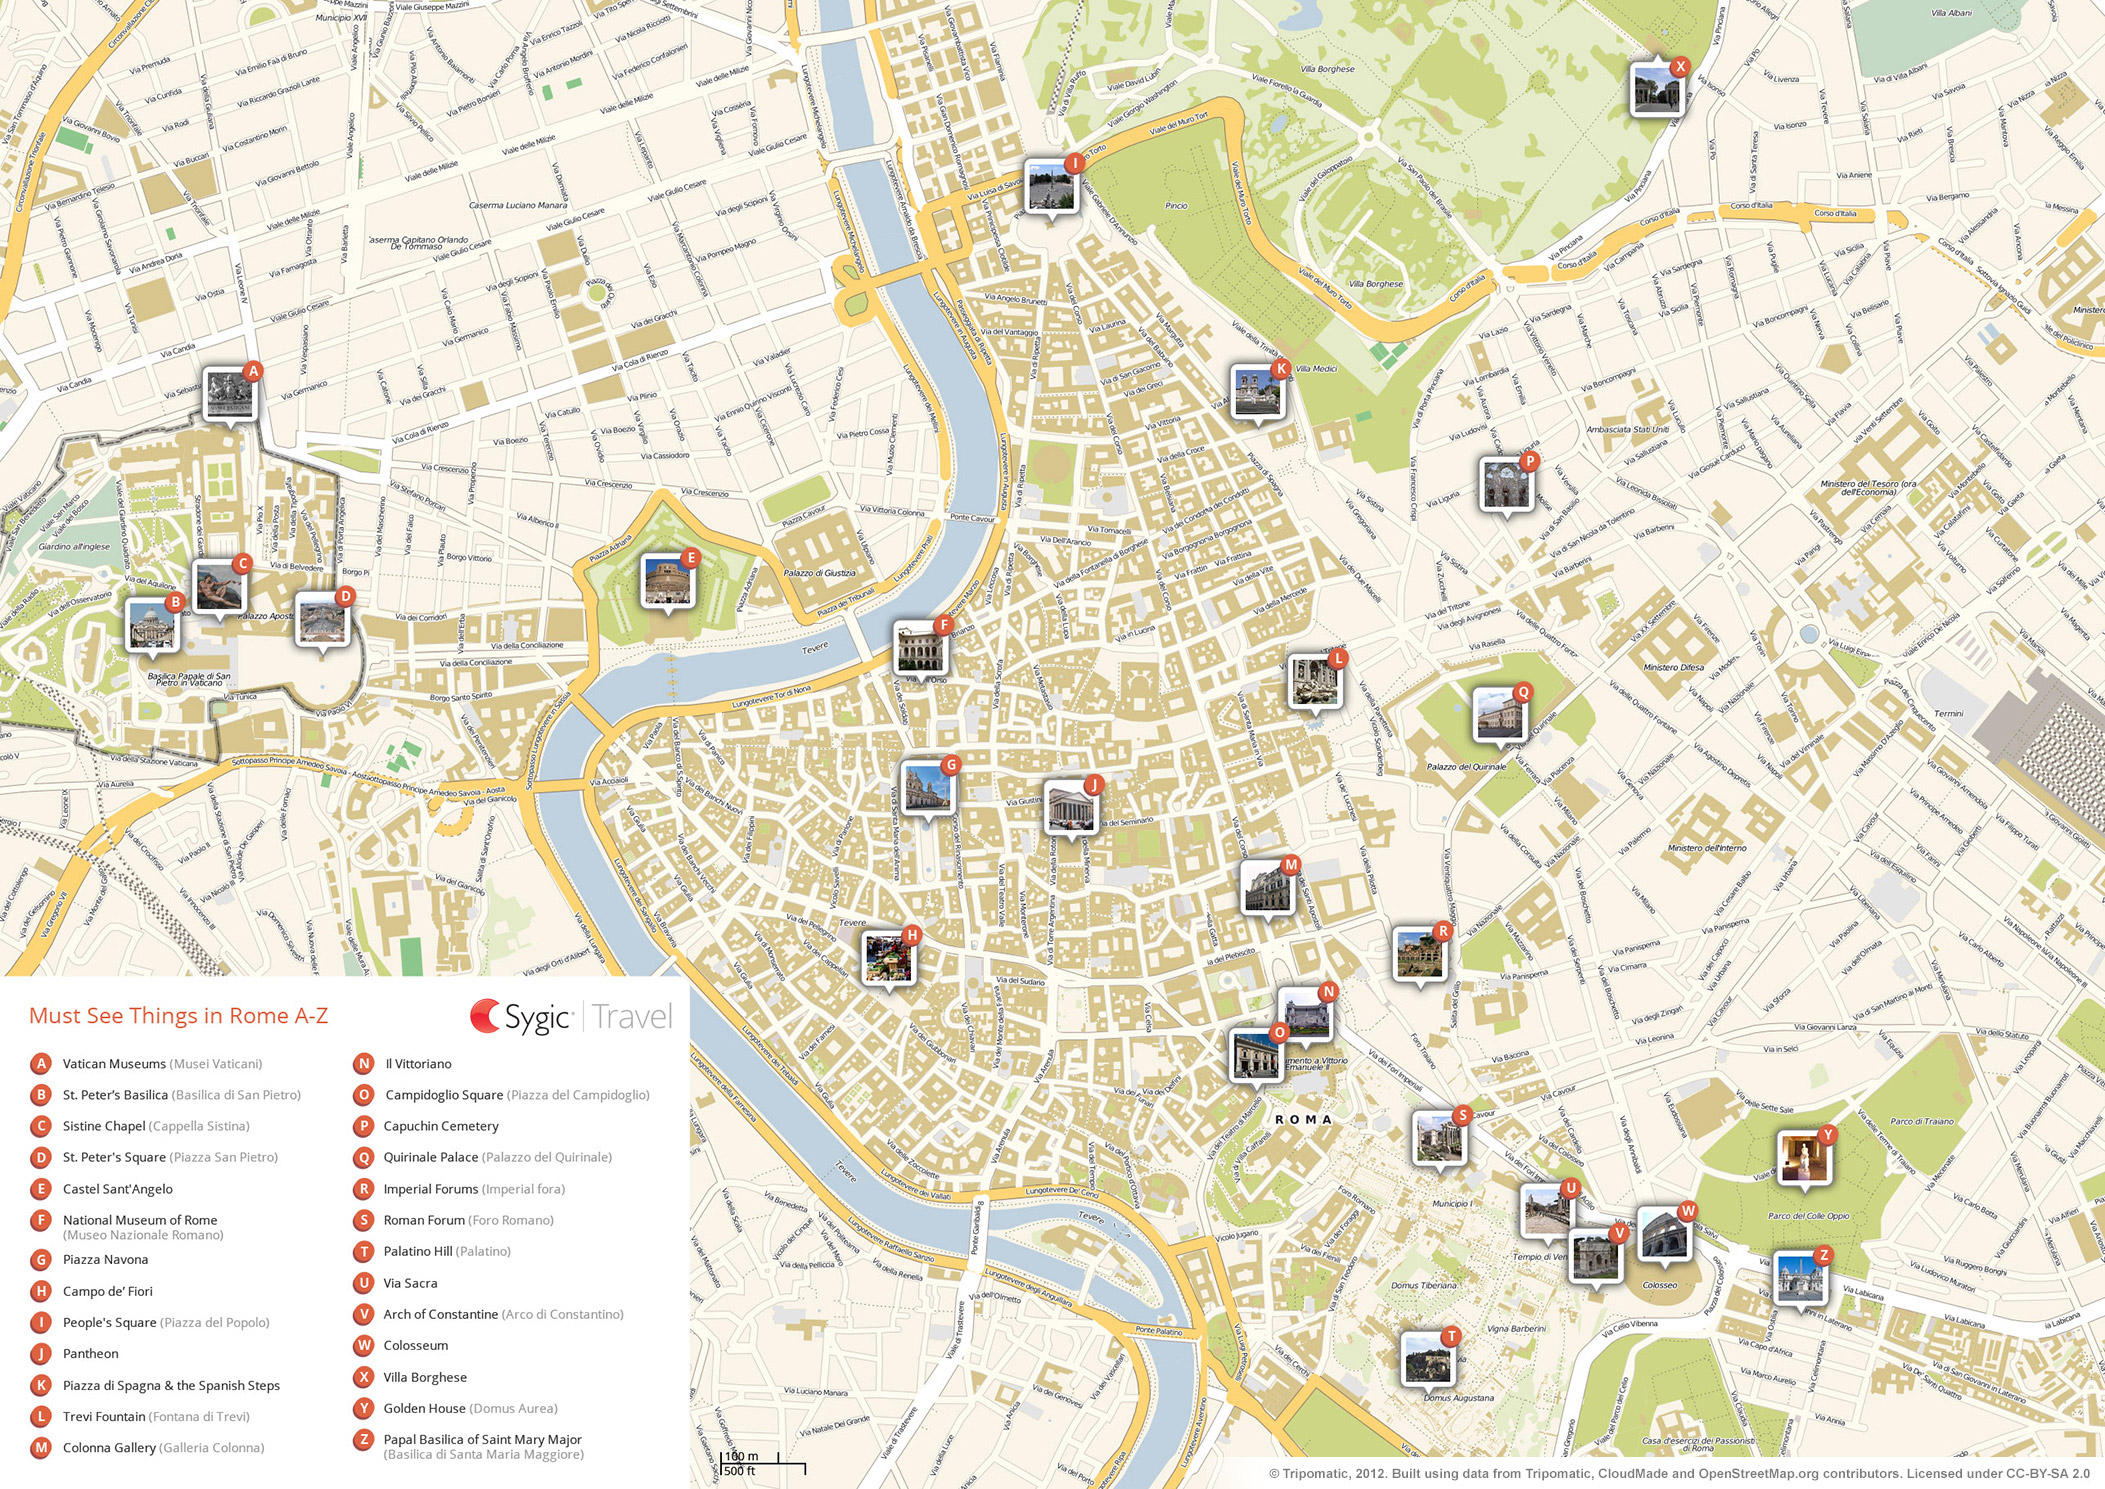 Rome Printable Tourist Map | Sygic Travel - Printable City Map Of Rome Italy